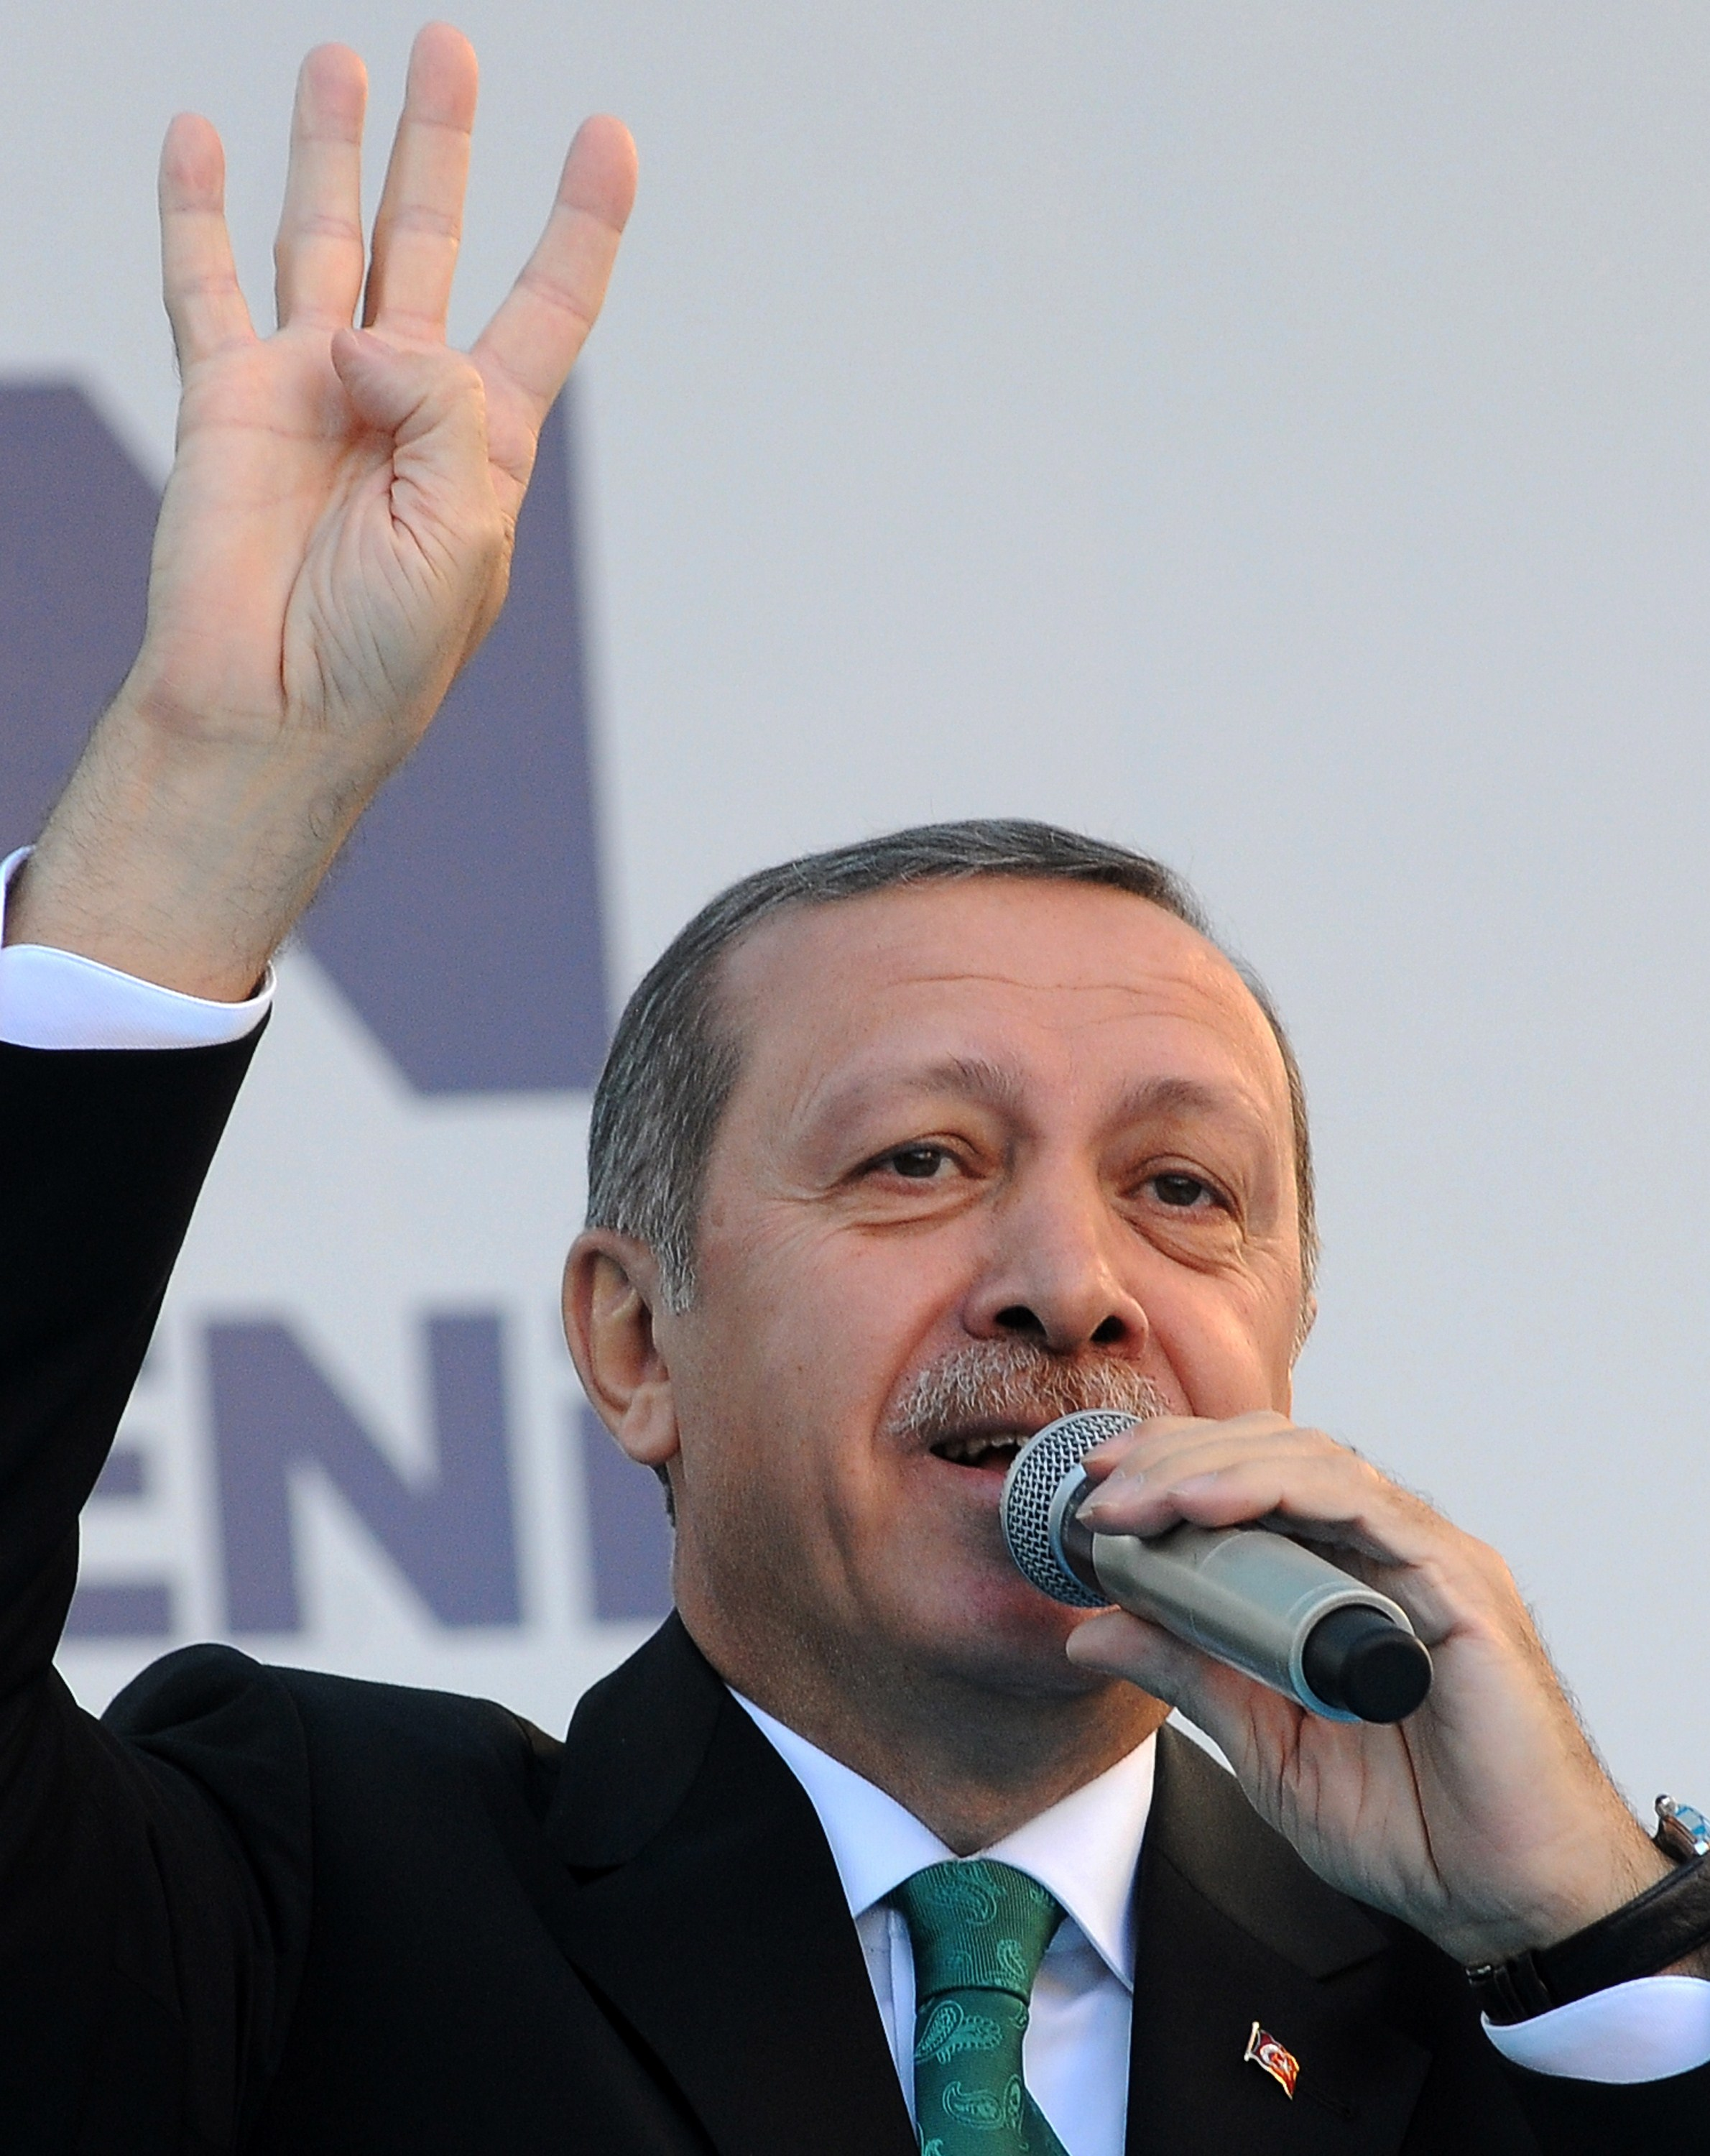 "Turkish Prime Minister Recep Tayyip Erdogan gestures the four-finger salute used by supporters of ousted Egyptian president Mohamed Morsi, a symbol known as ""Rabaa"", which means four in Arabic, remembering those killed in the crackdown on the Rabaa al-Adawiya protest camp in Cairo in early 2013, as he delivers a speech in Trabzon on November 23, 2013. Turkey declared Egypt's ambassador ""persona non grata"" and downgraded diplomatic relations to the level of charge d'affaires on November 23, in a tit-for-tat move after Cairo expelled its envoy, the foreign ministry said in a statement. Erdogan said his government would never respect military-installed rulers, in remarks made after Egypt's expulsion of Ankara's ambassador.    (AFP PHOTO/STRINGER)"